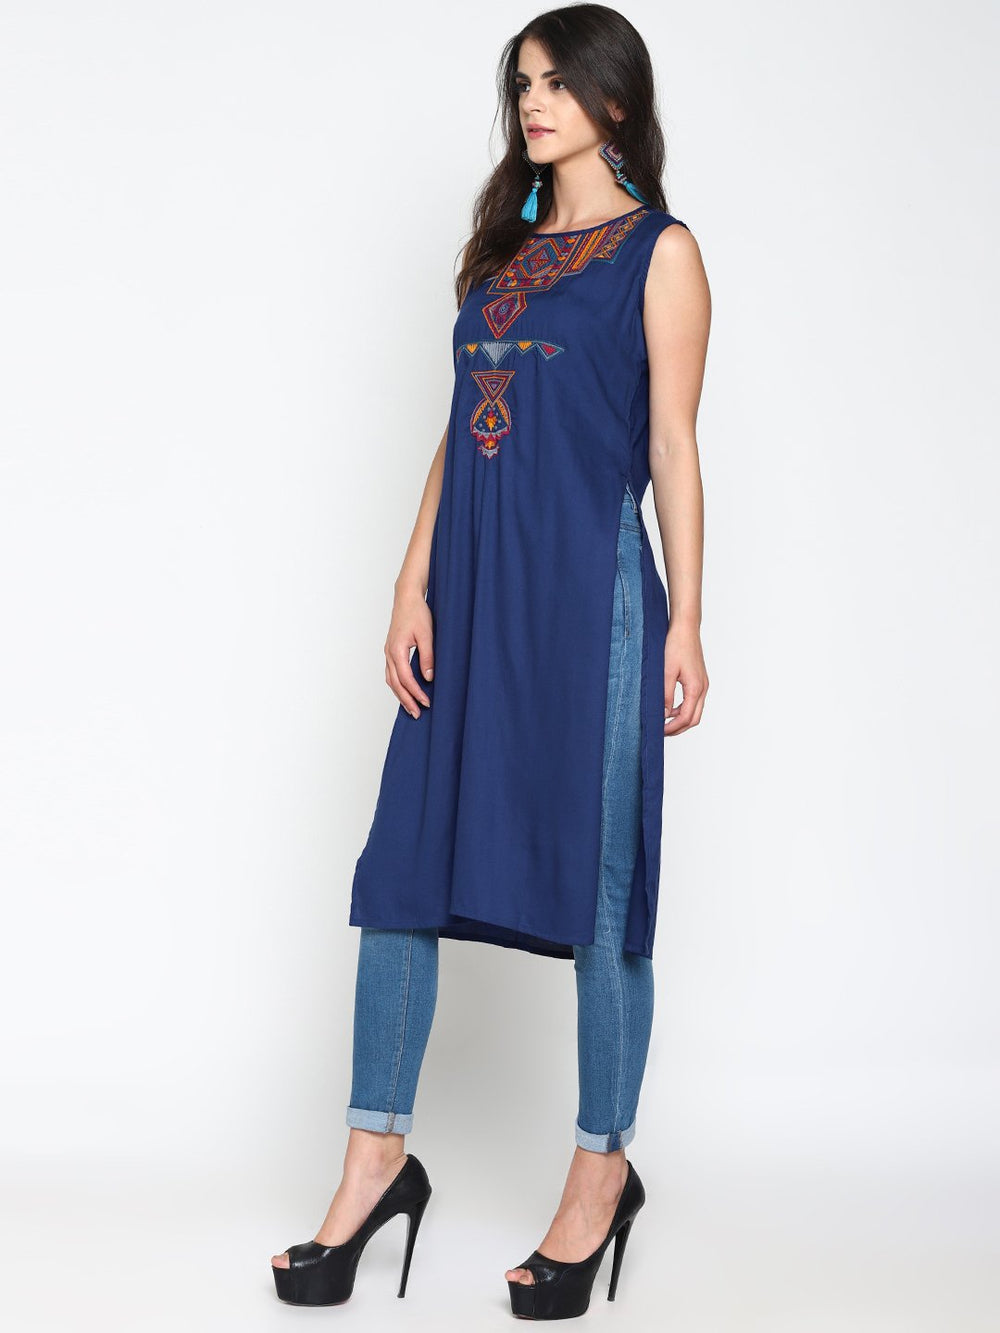 Blue Sleeveless Kurta With Multicolor Embroidery | Untung